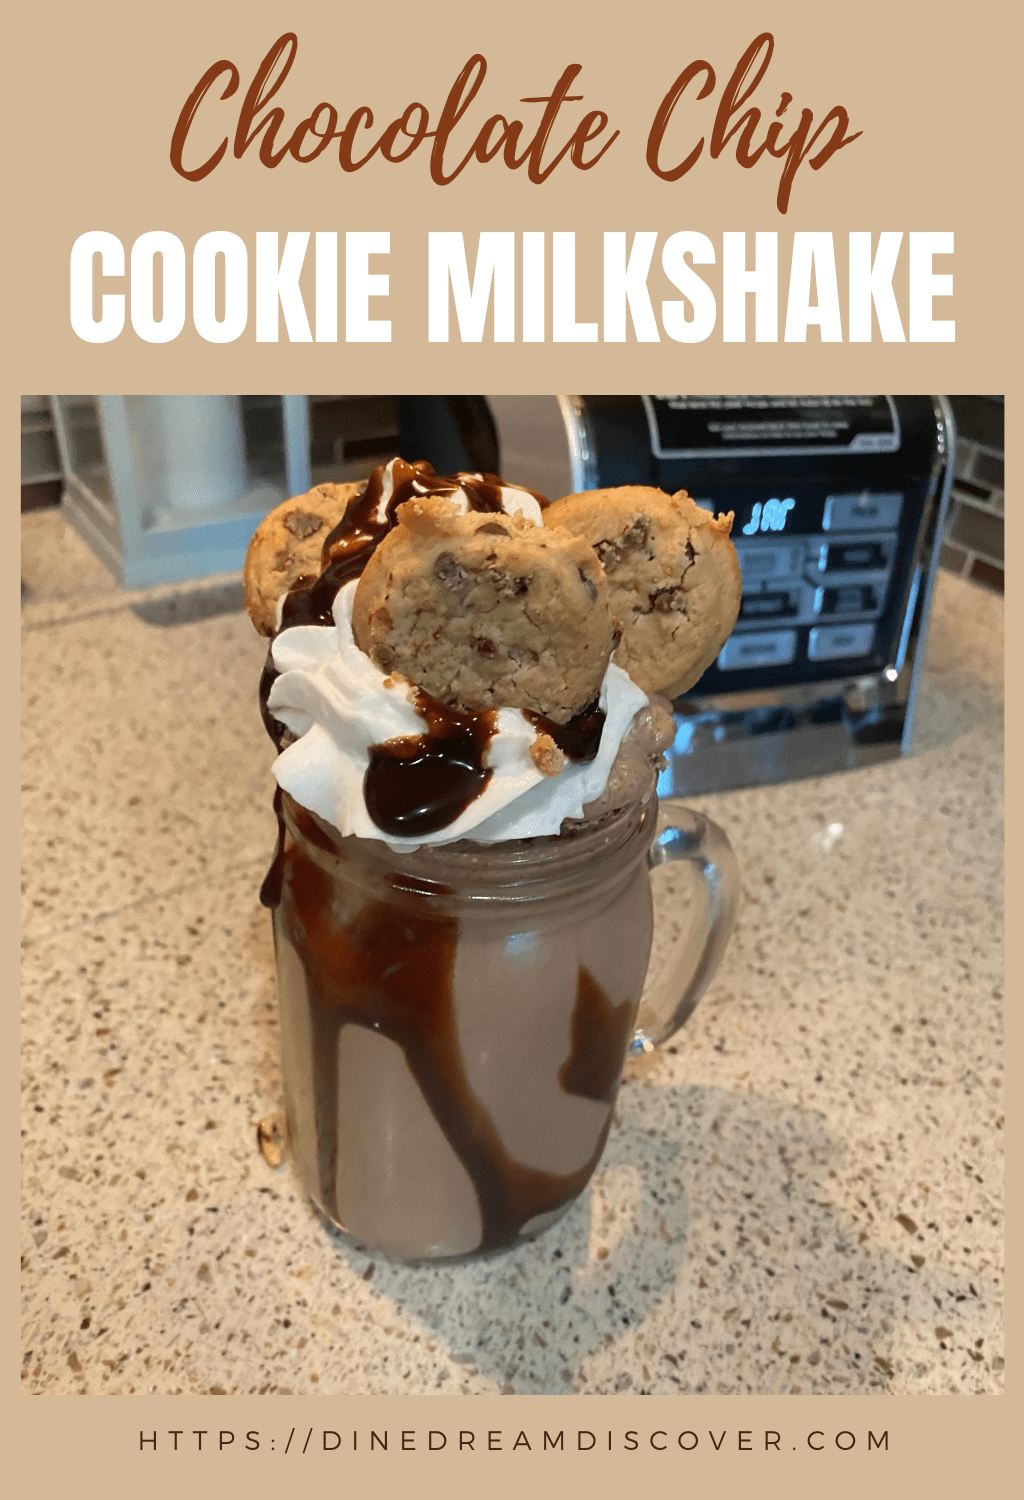 Chocolate Chip Cookie Milkshake